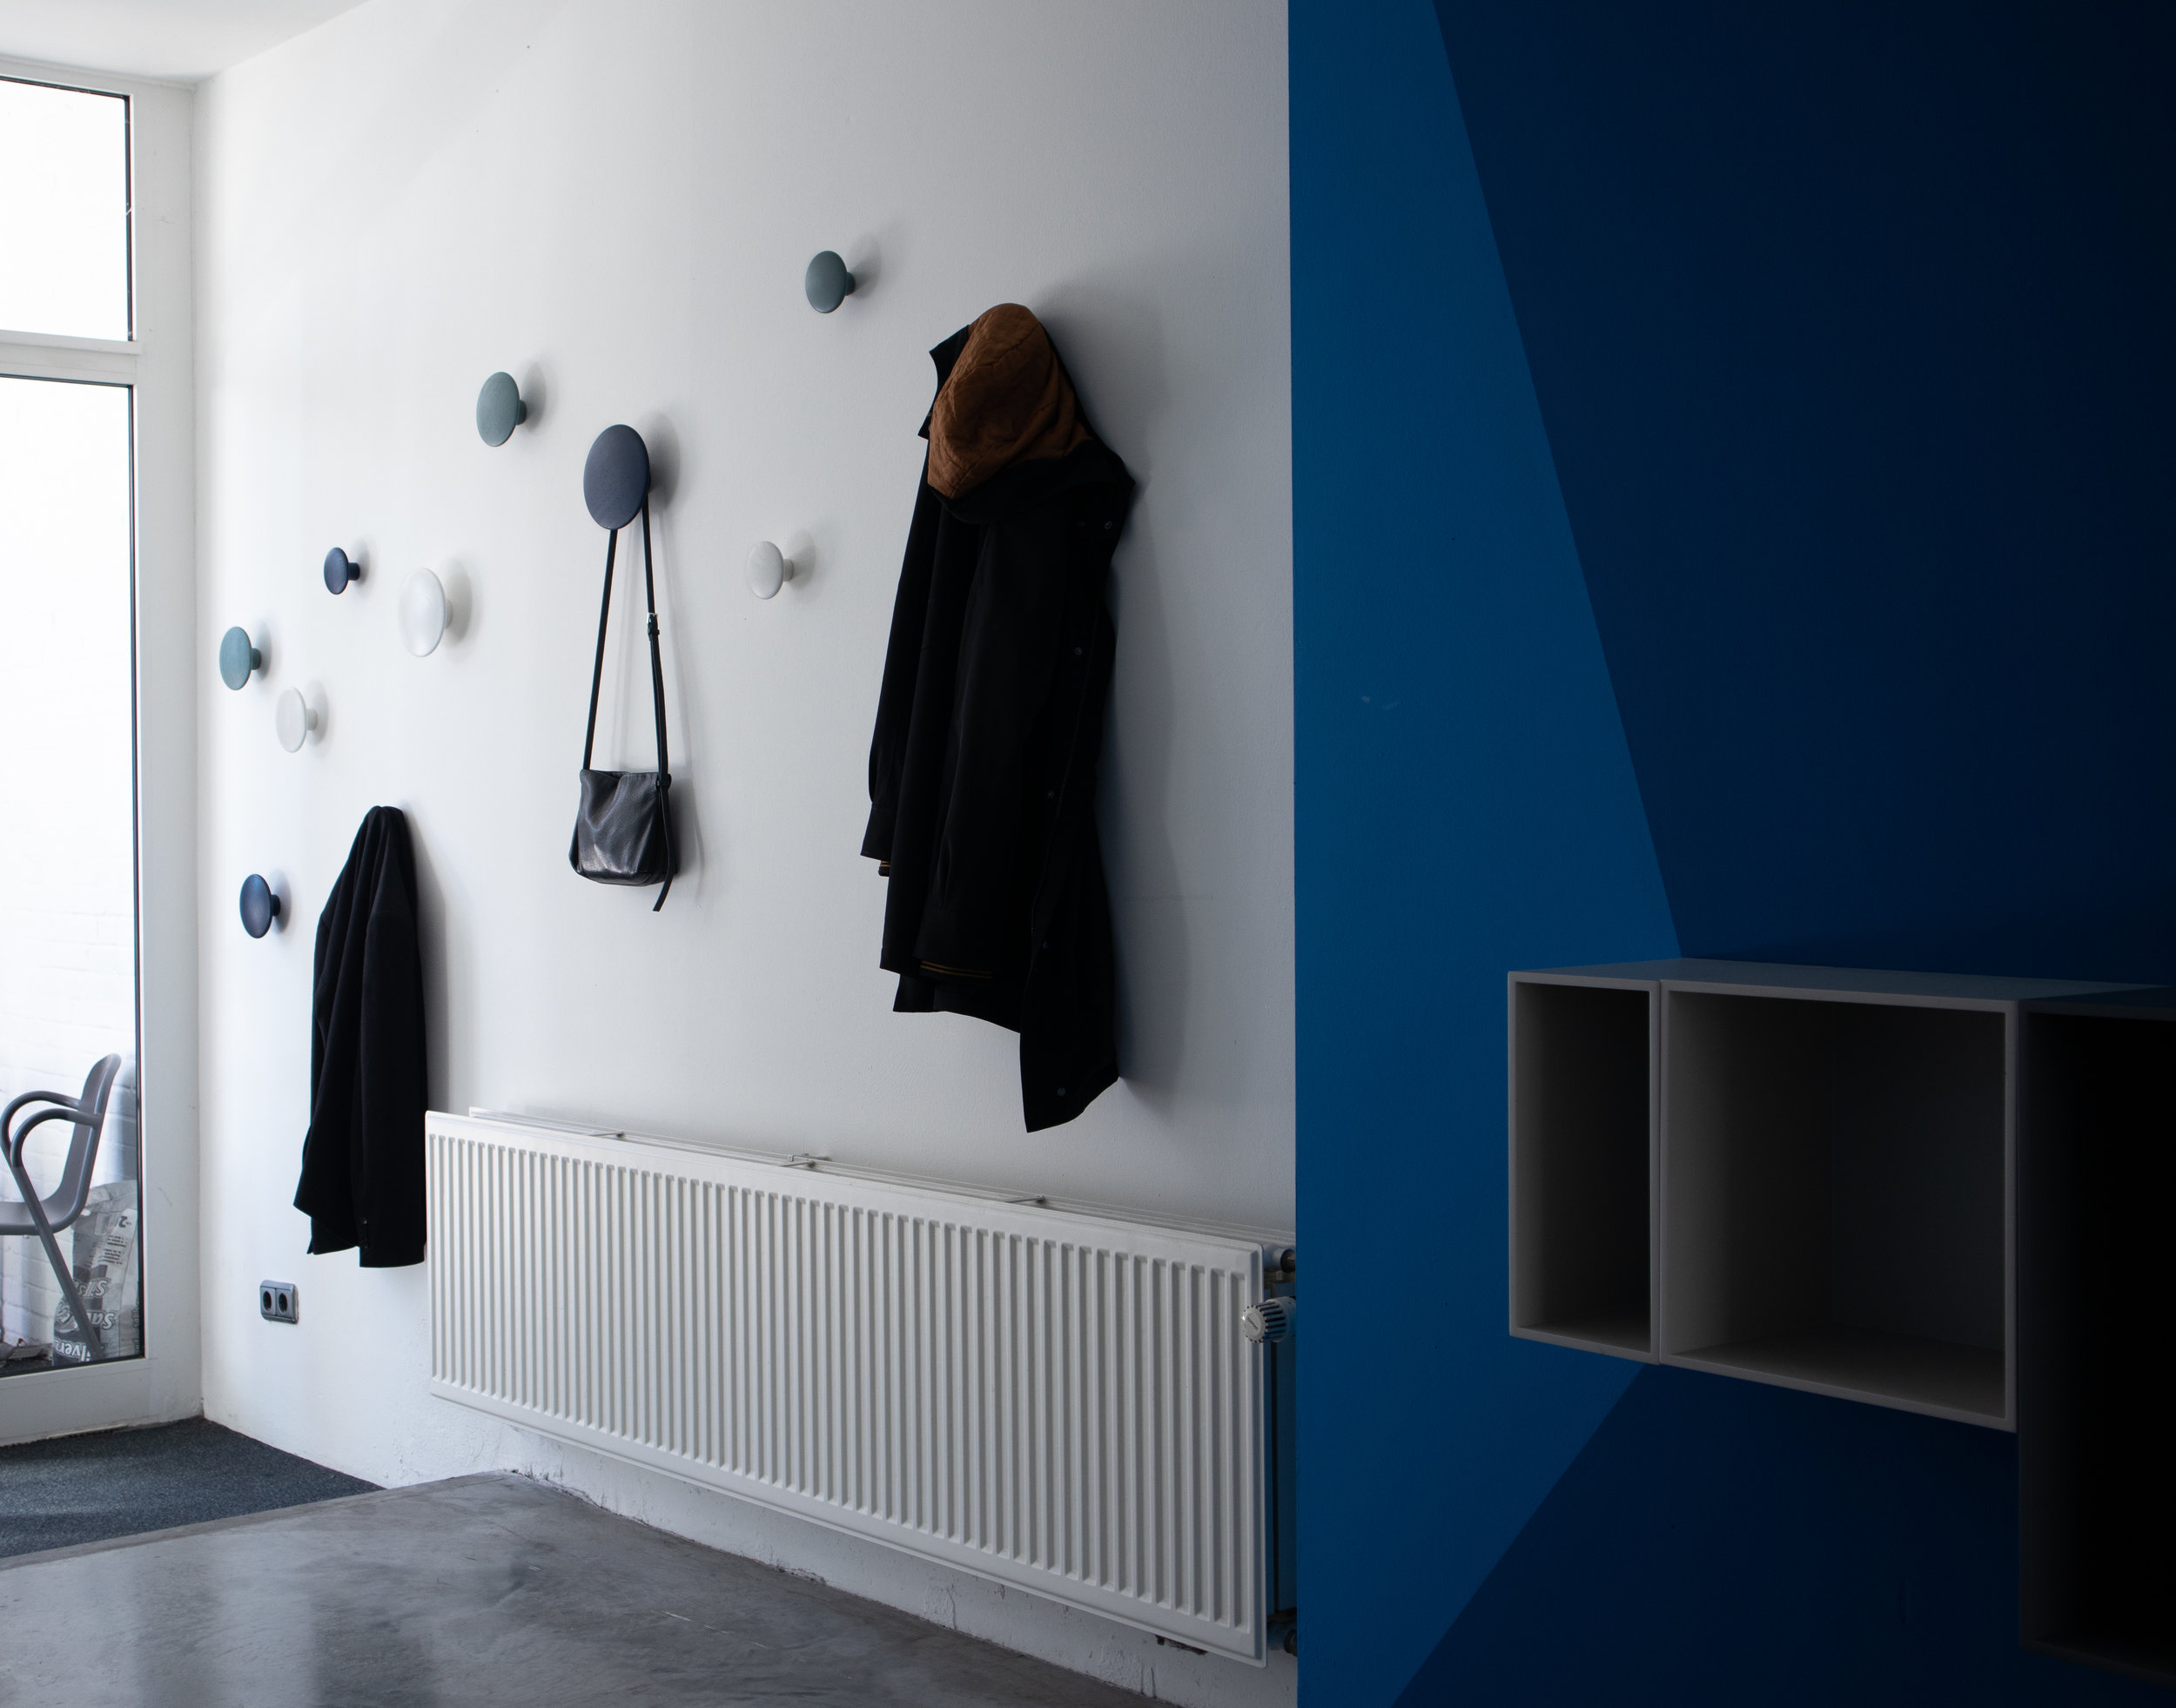 Entrance, hall, the dots Muuto interior design, interior project for Kors IT Headquarters in Eindhoven 1.jpg